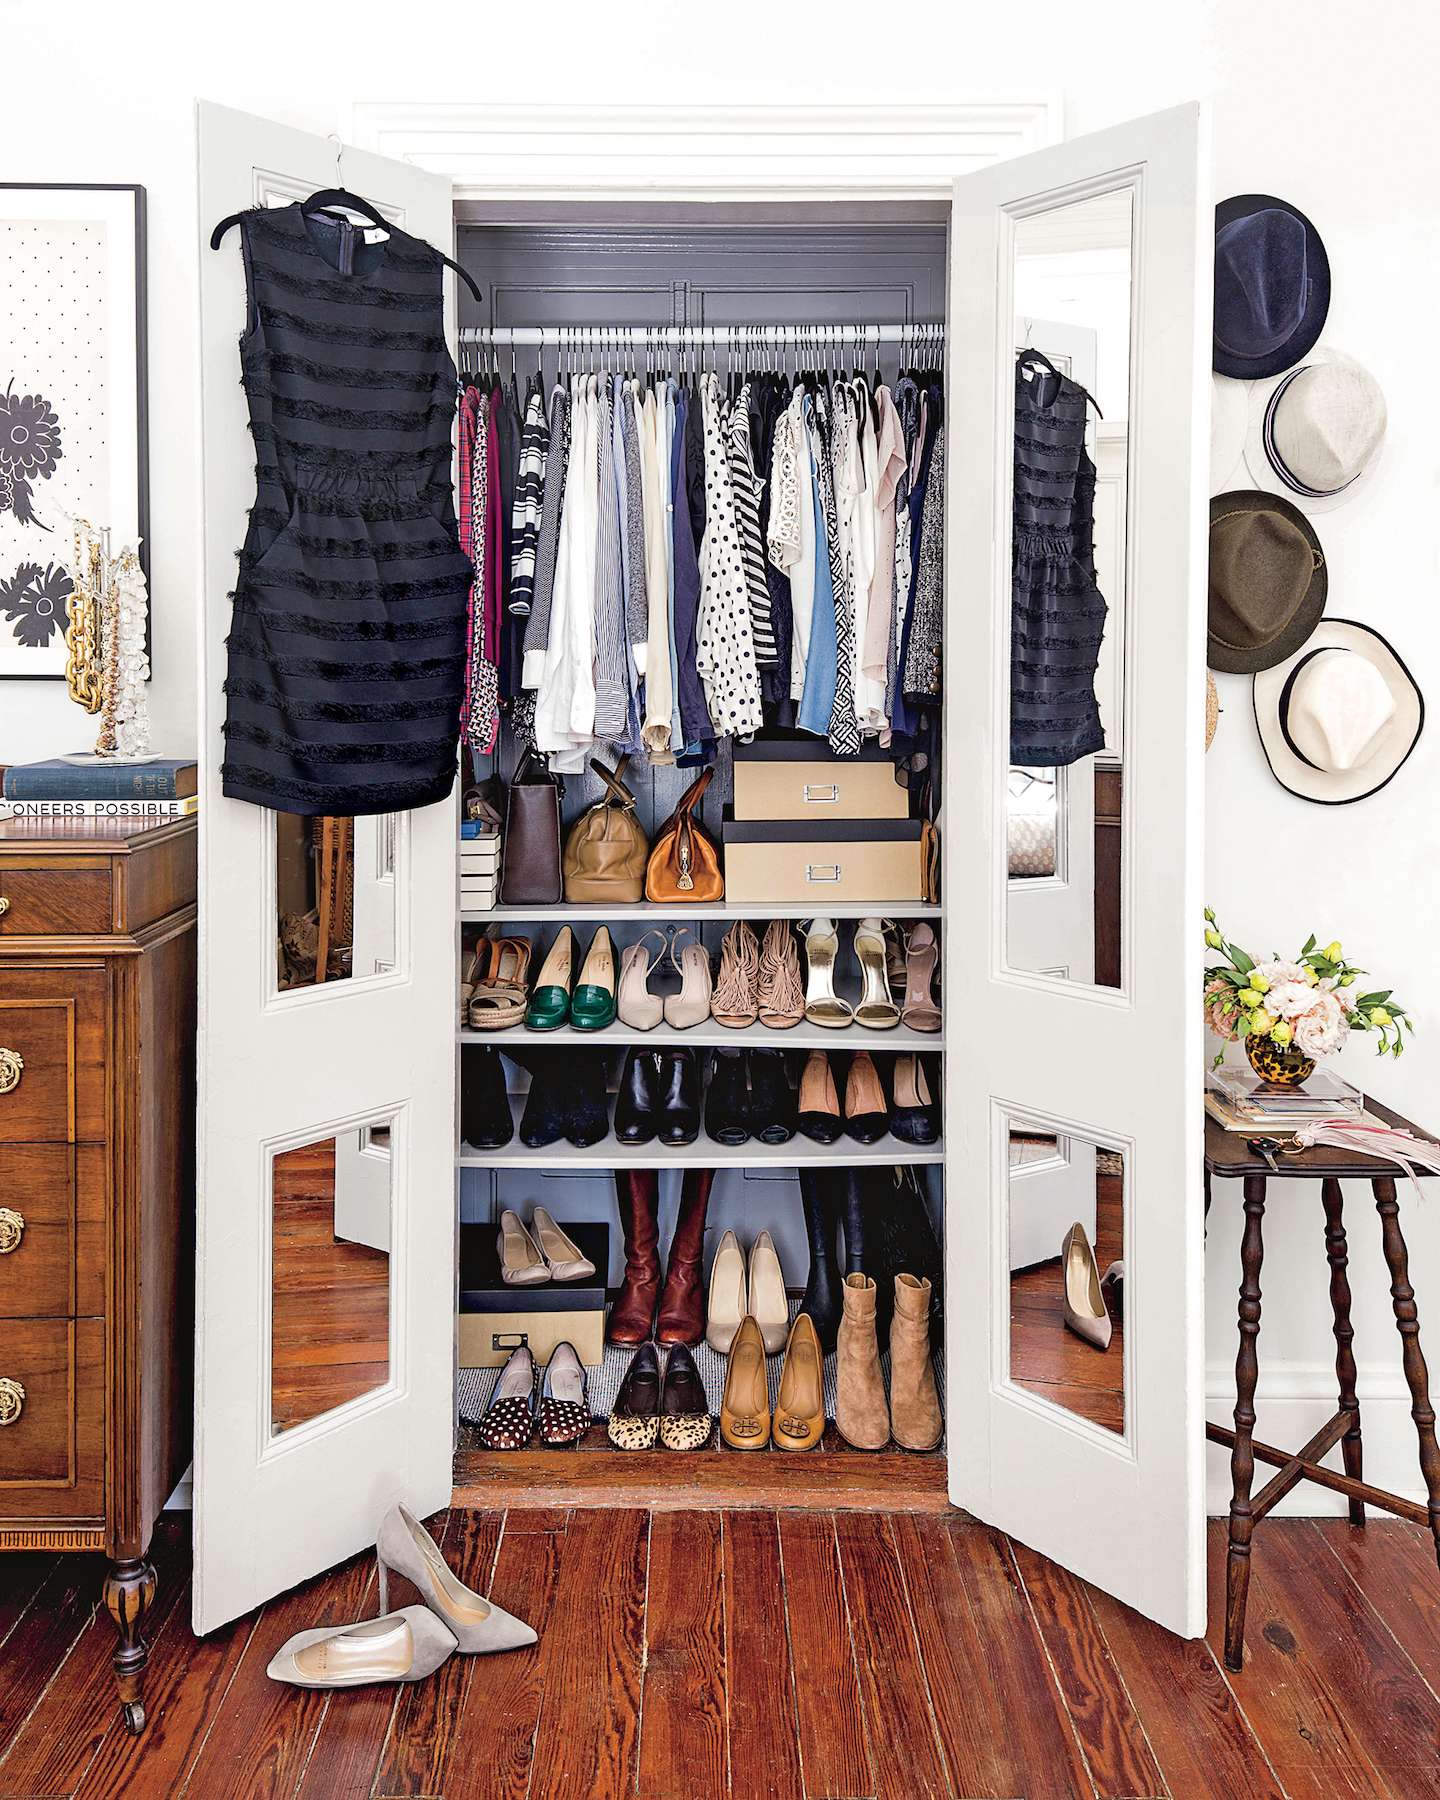 5 Genius Organization Tips To Steal From The Tidiest Closets